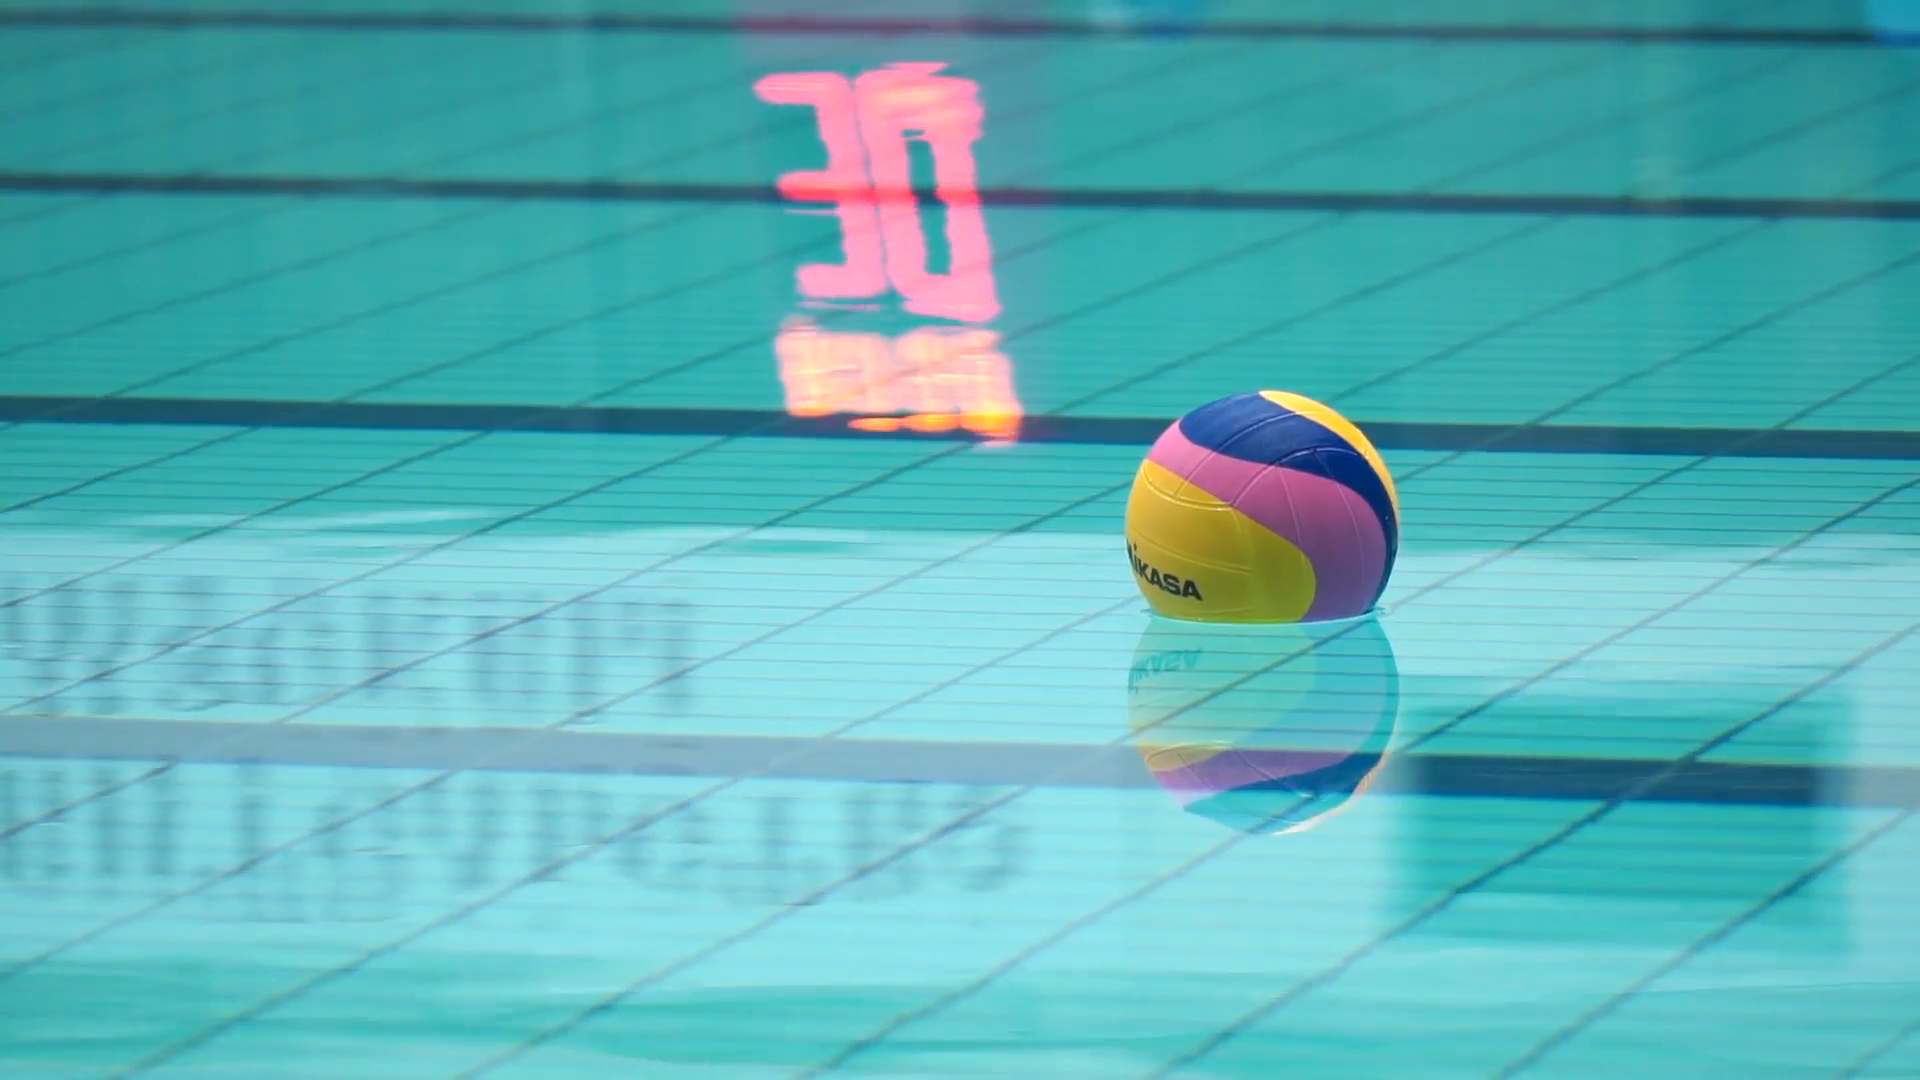 Water Polo Png Hd - Water Polo Ball Floating Near The Timer Reflection_Higq4G1G__F0000, Transparent background PNG HD thumbnail